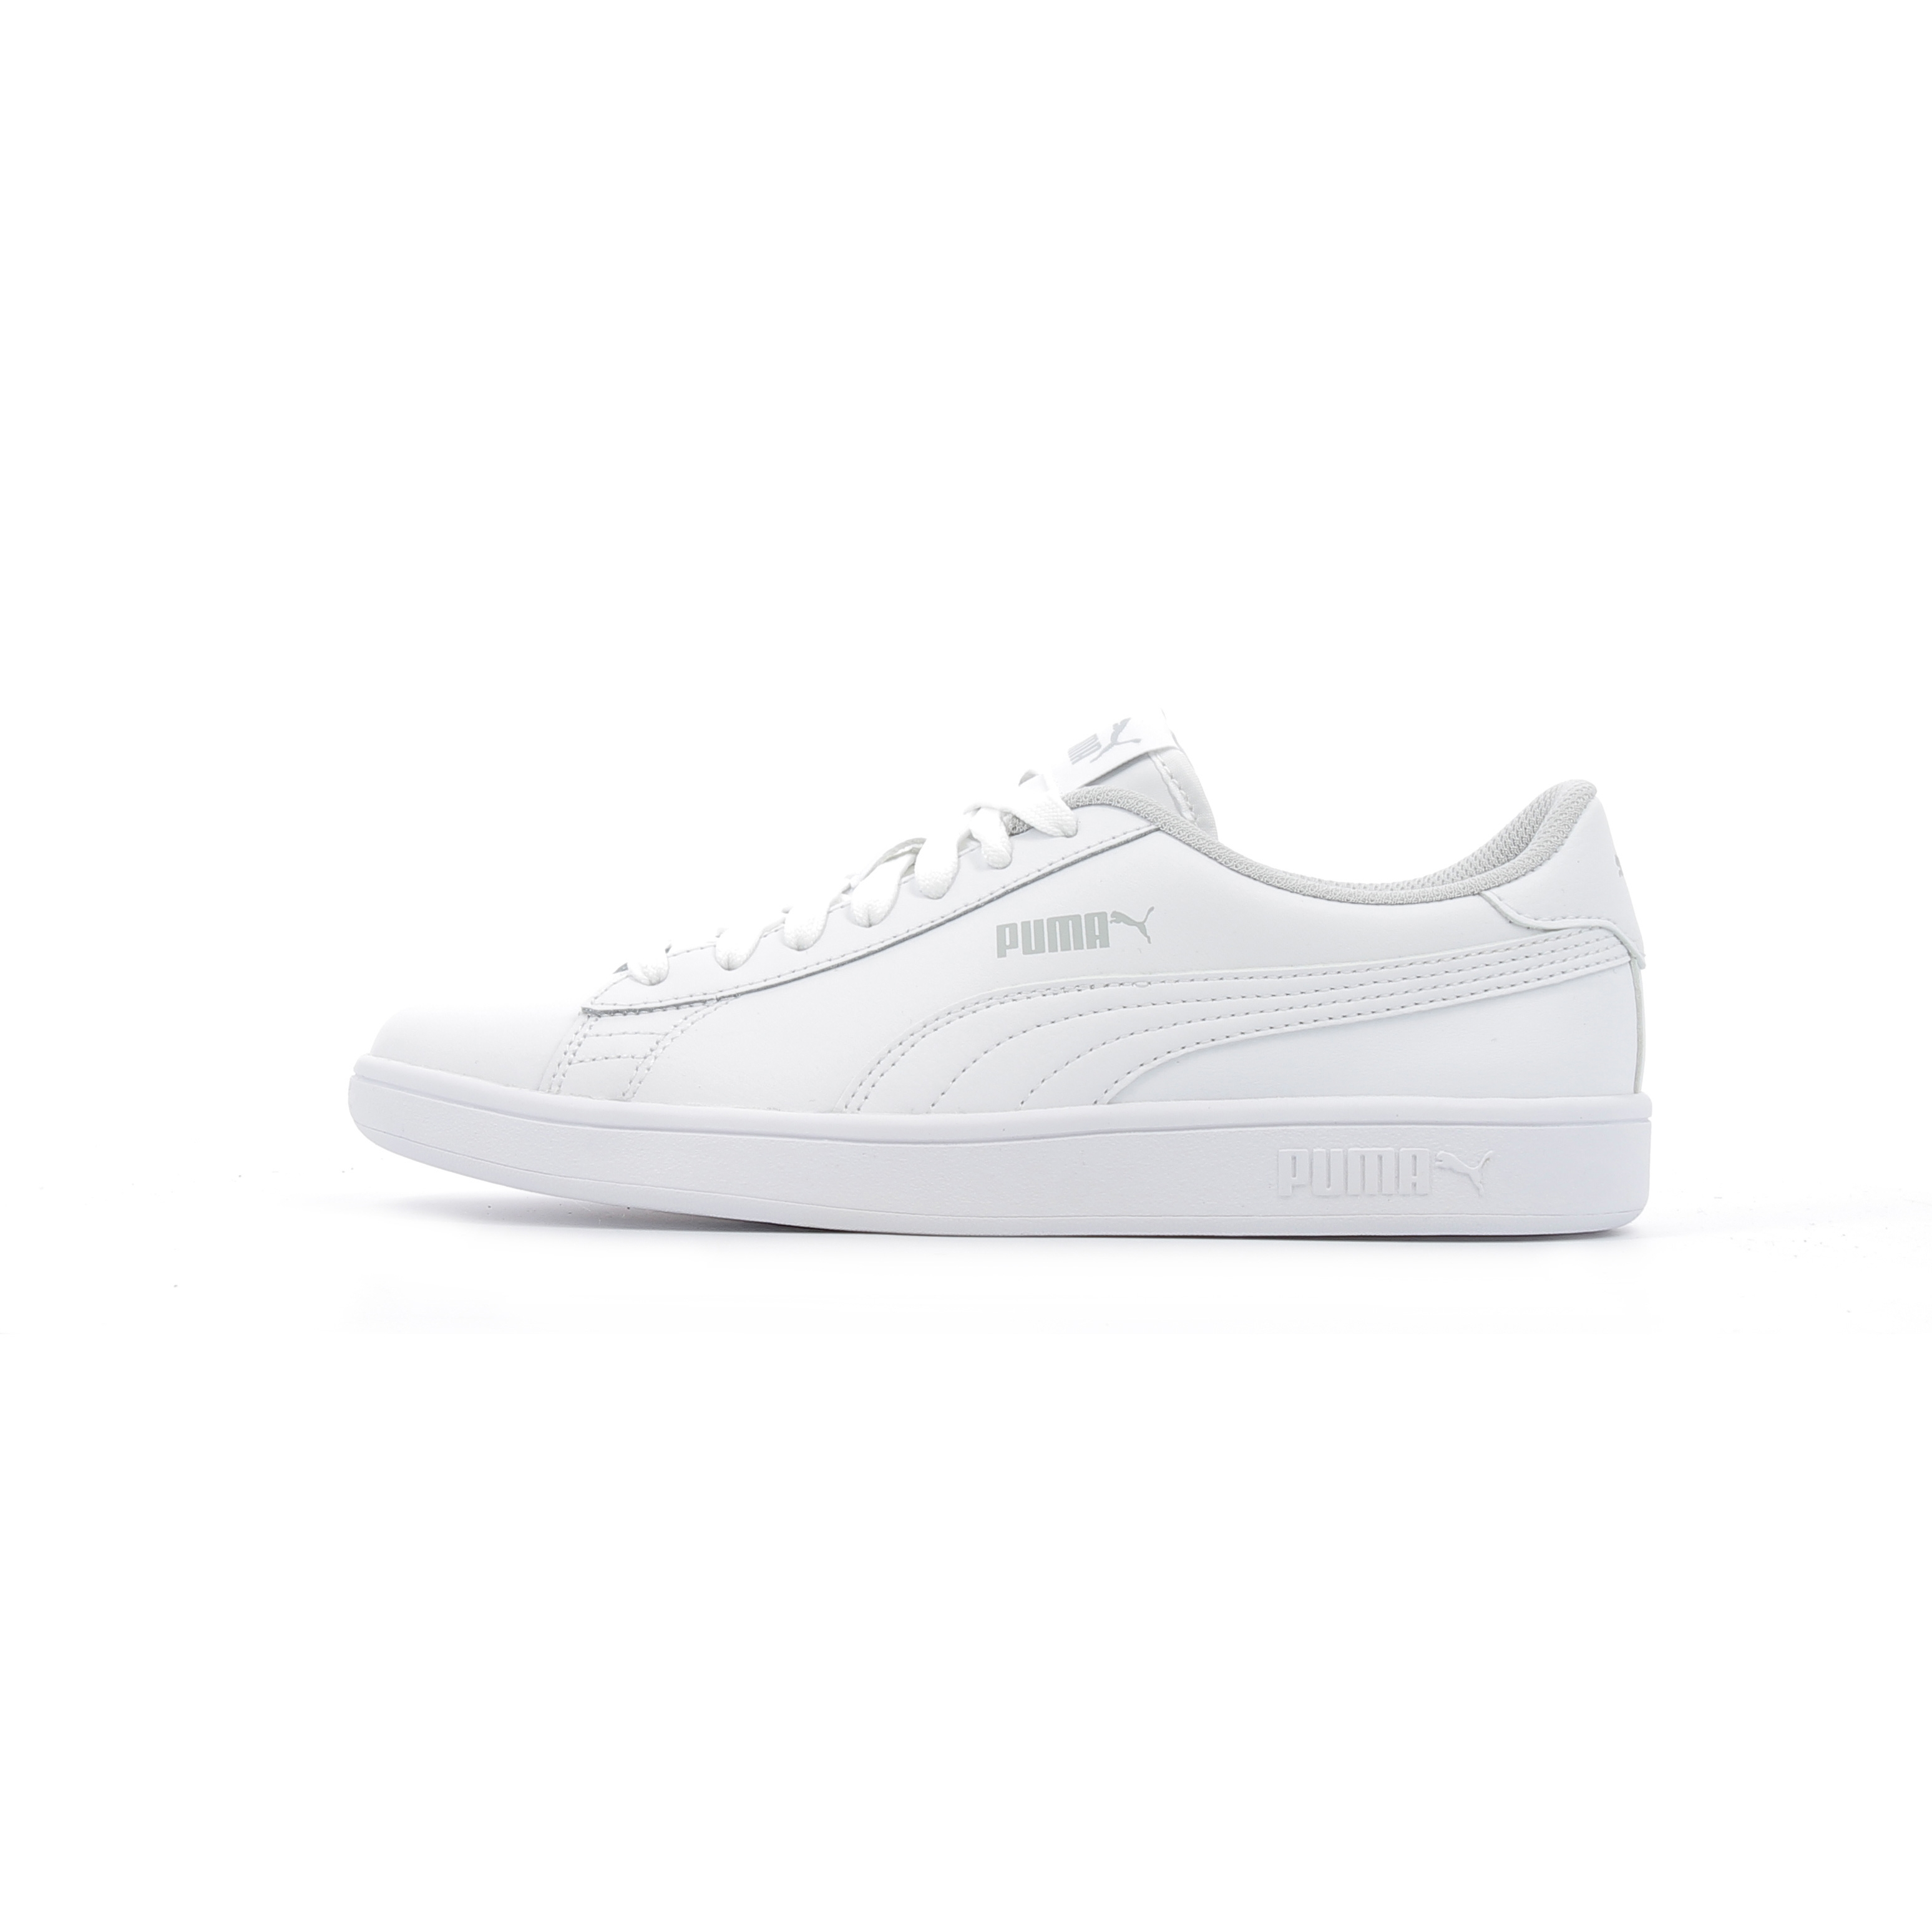 Baskets V2 Blanc L Basses Puma Smash 3KTF1uJcl